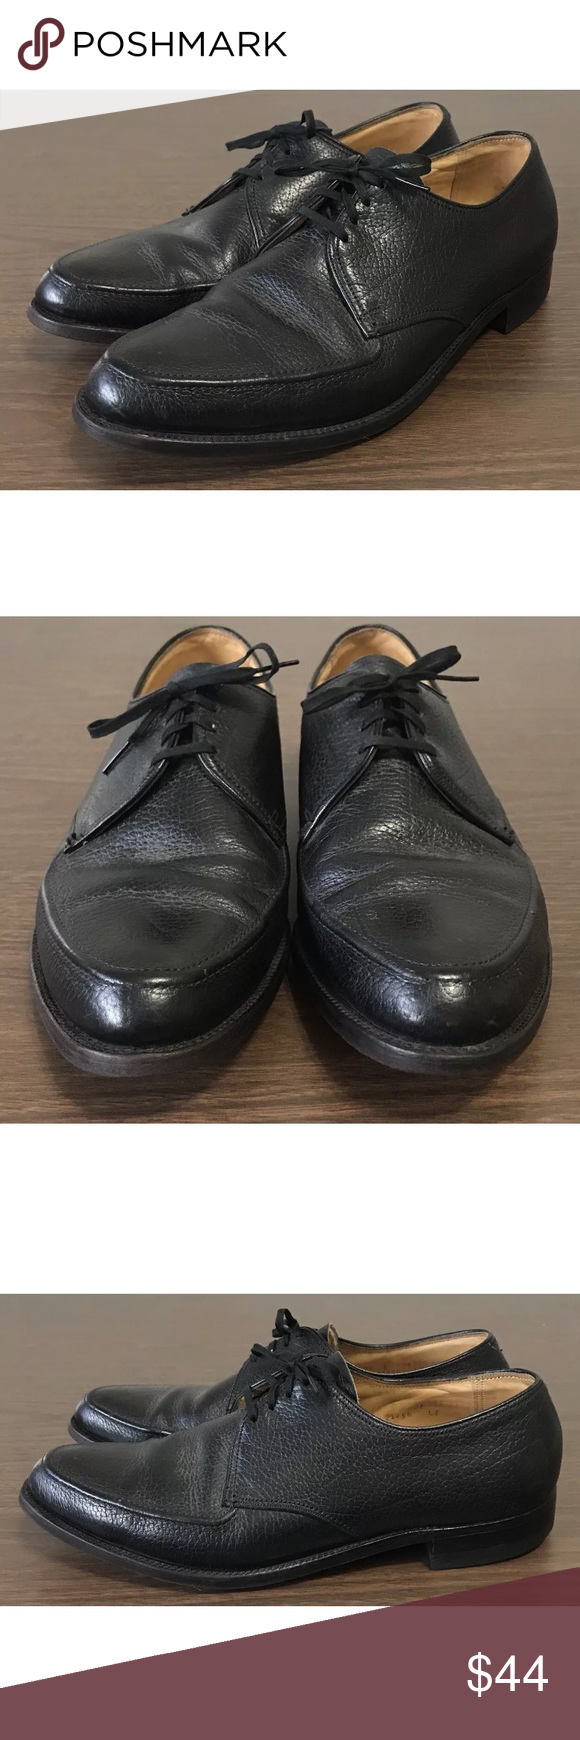 Pre-owned - Leather lace ups Florsheim The Cheapest For Sale Clearance Online Amazon 100% Guaranteed Discount Outlet Locations KfFJOWM